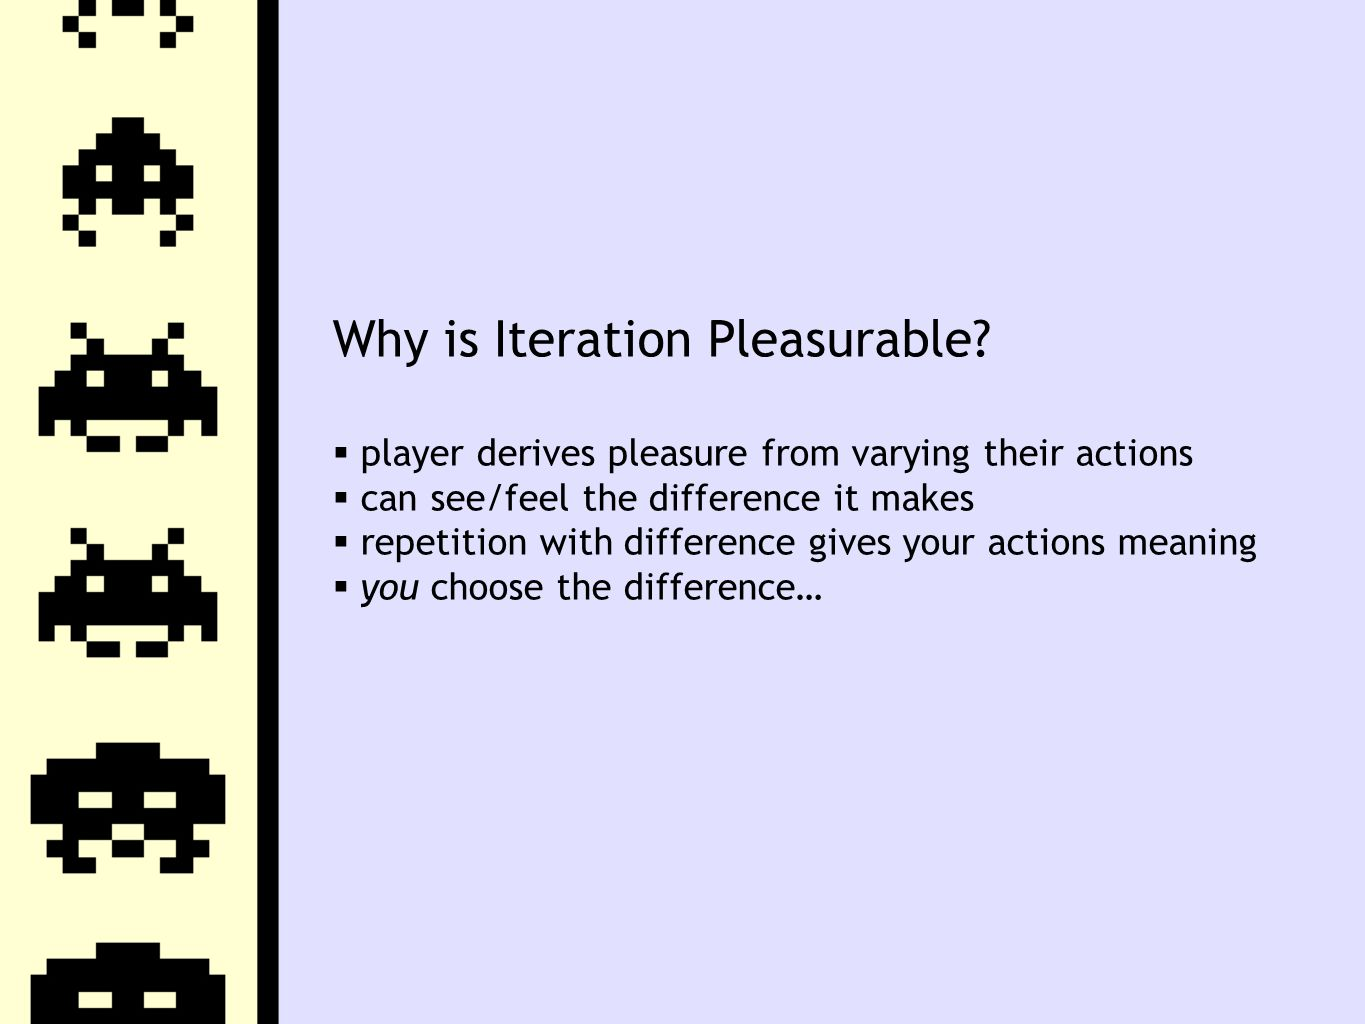 Why is Iteration Pleasurable.